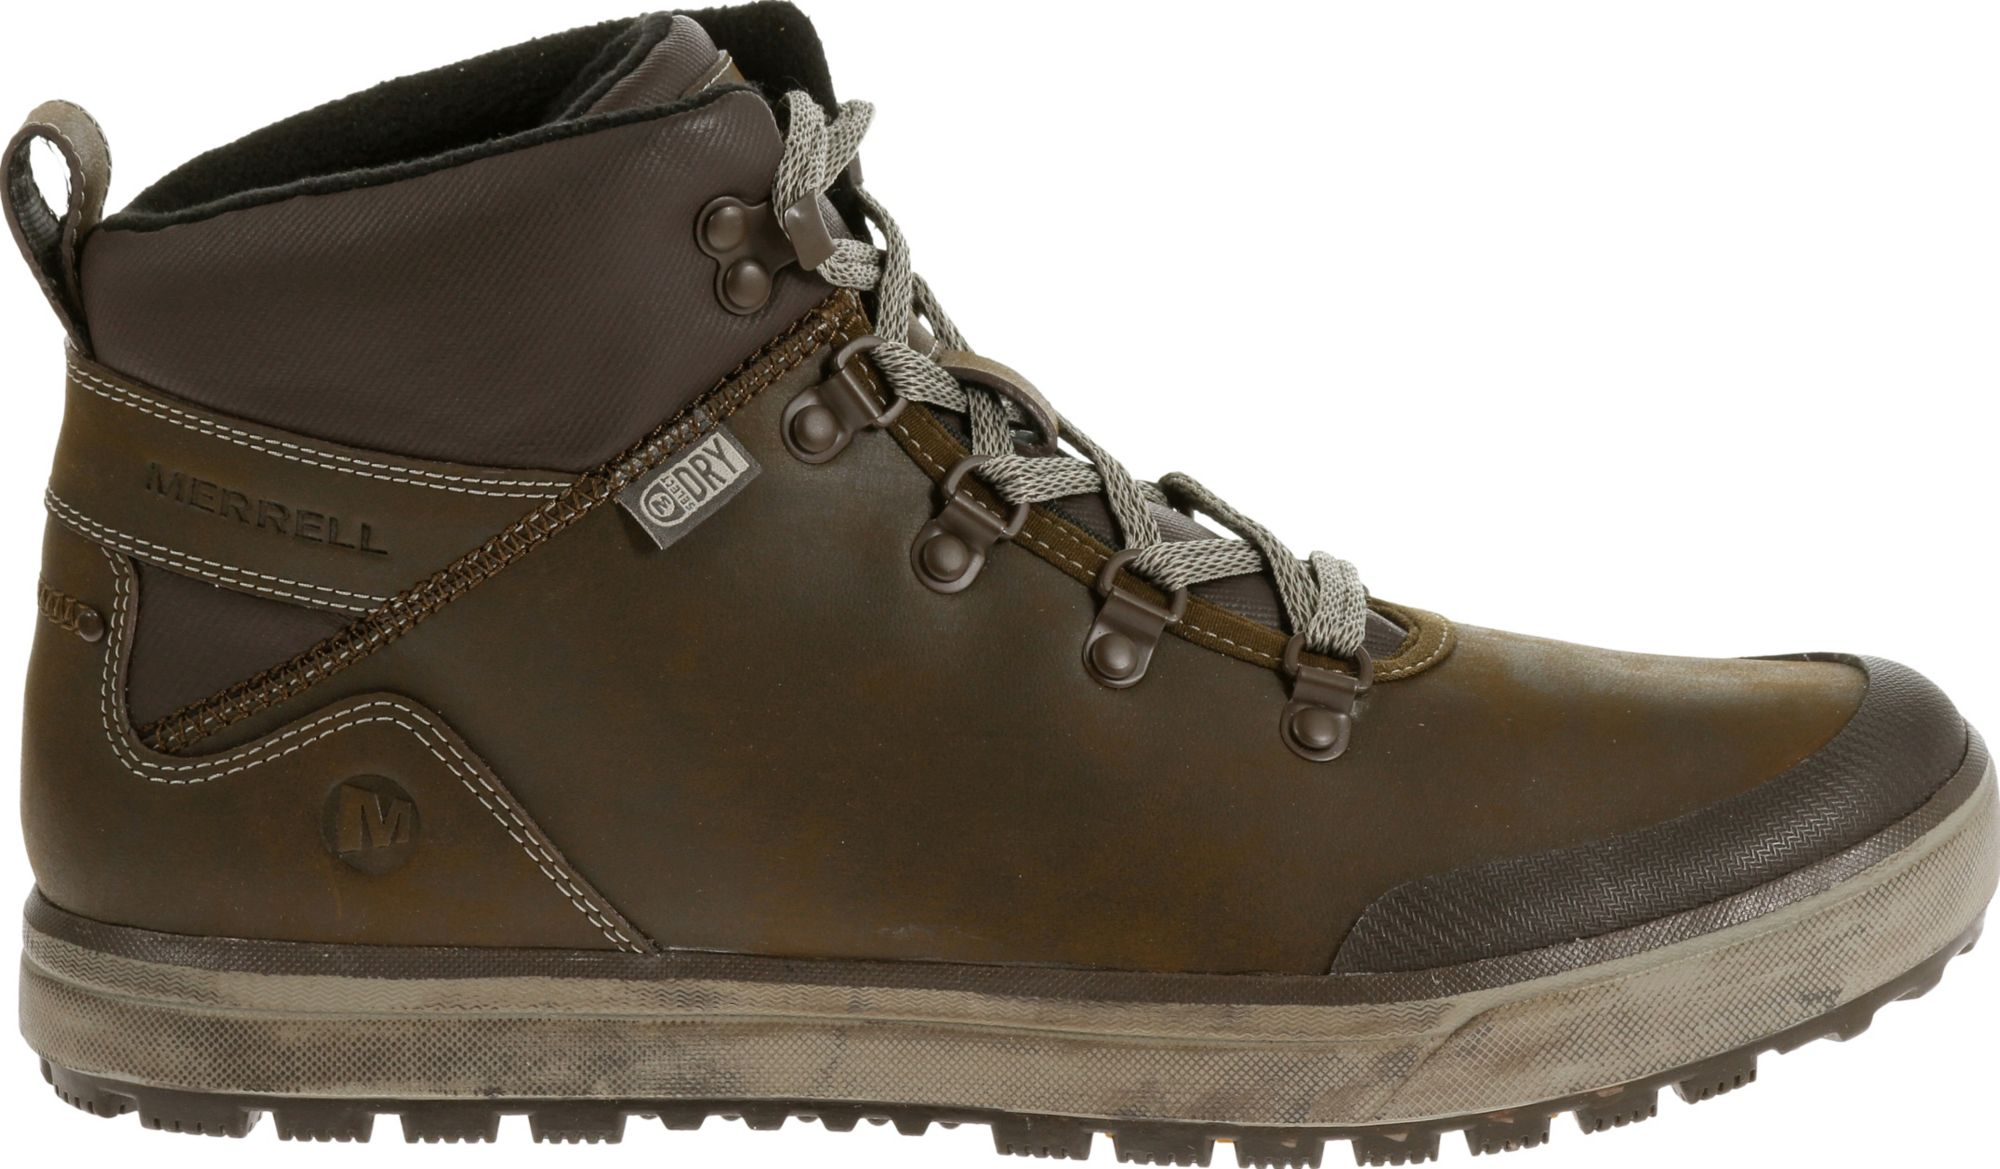 Merrell Men's Turku Trek 200g Waterproof Winter Boots| DICK'S ...